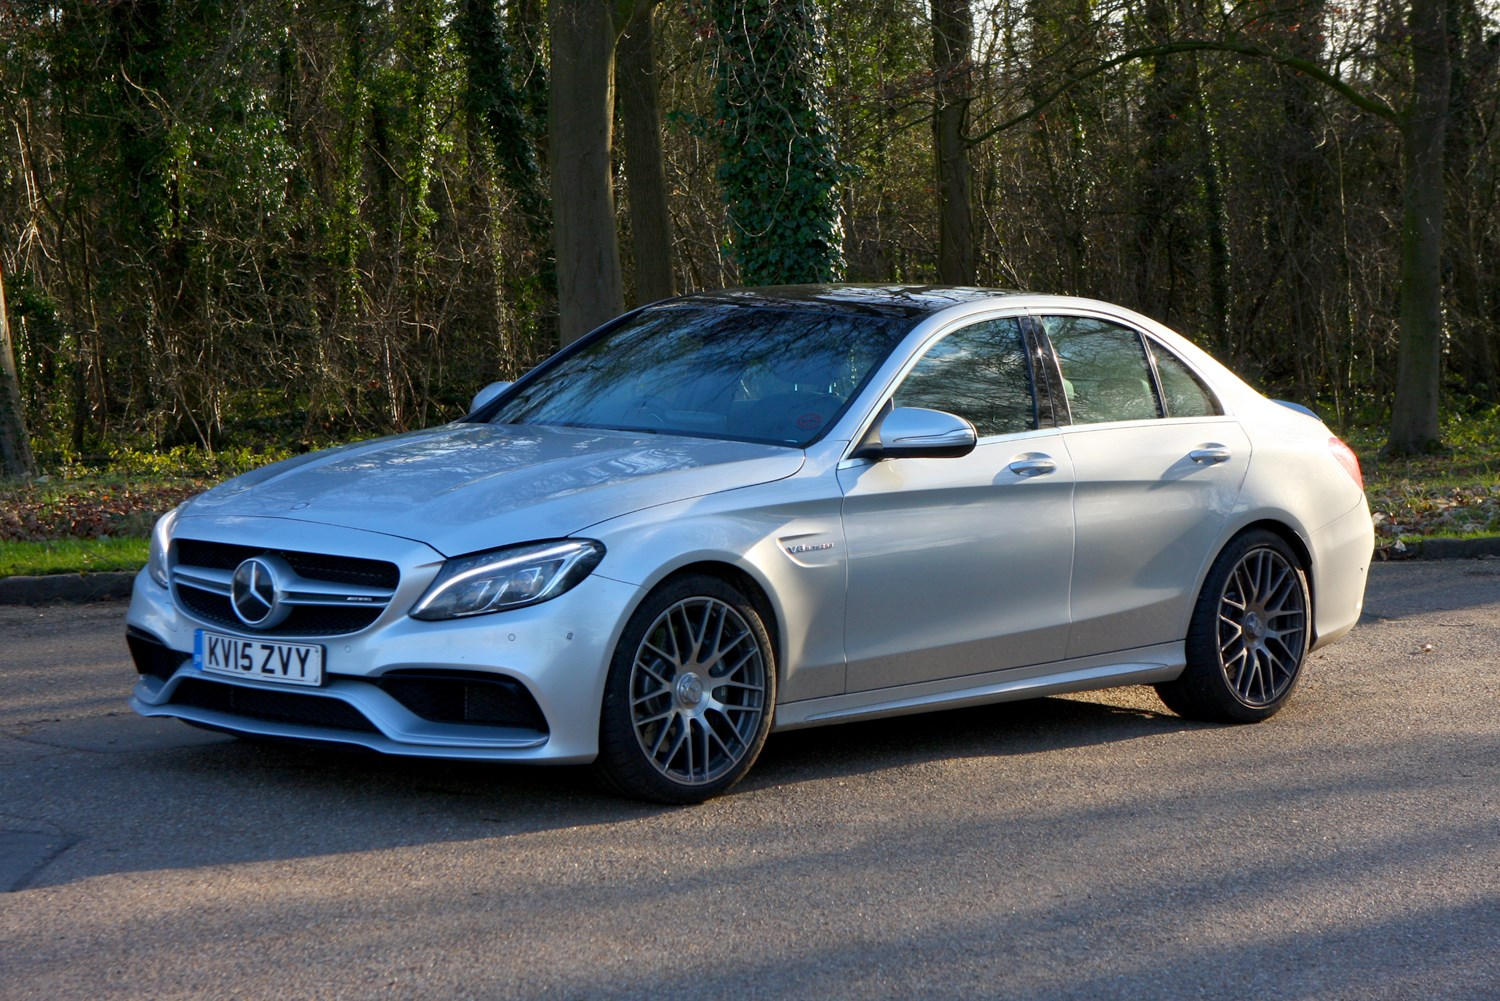 Mercedes benz c class amg 2015 driving performance for Mercedes benz 300 amg